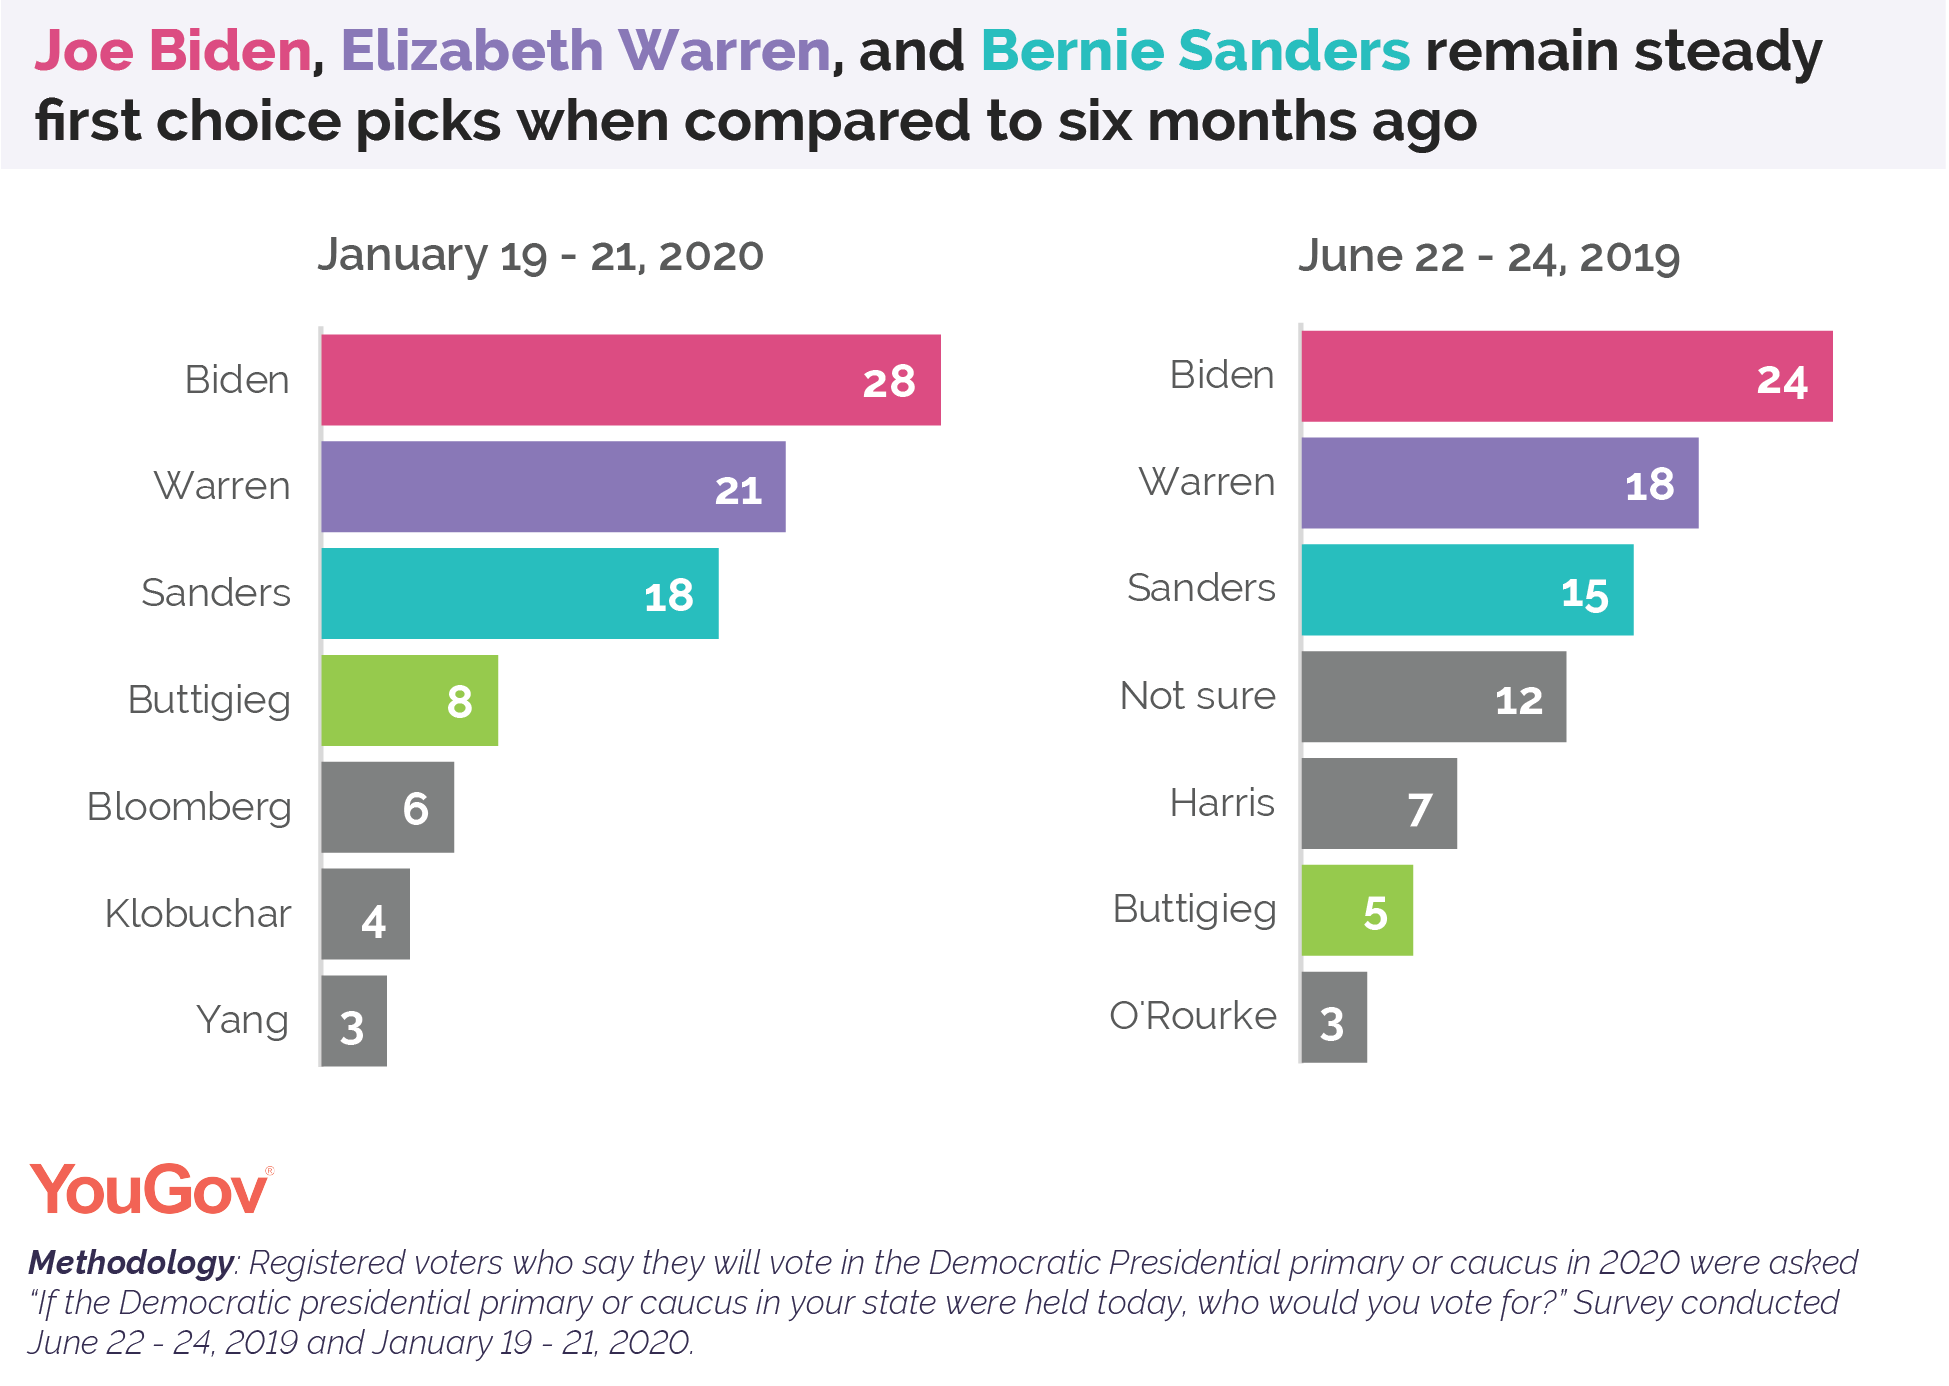 Joe Biden, Elizabeth Warren, and Bernie Sanders remain steady first choice picks when compared to six months ago